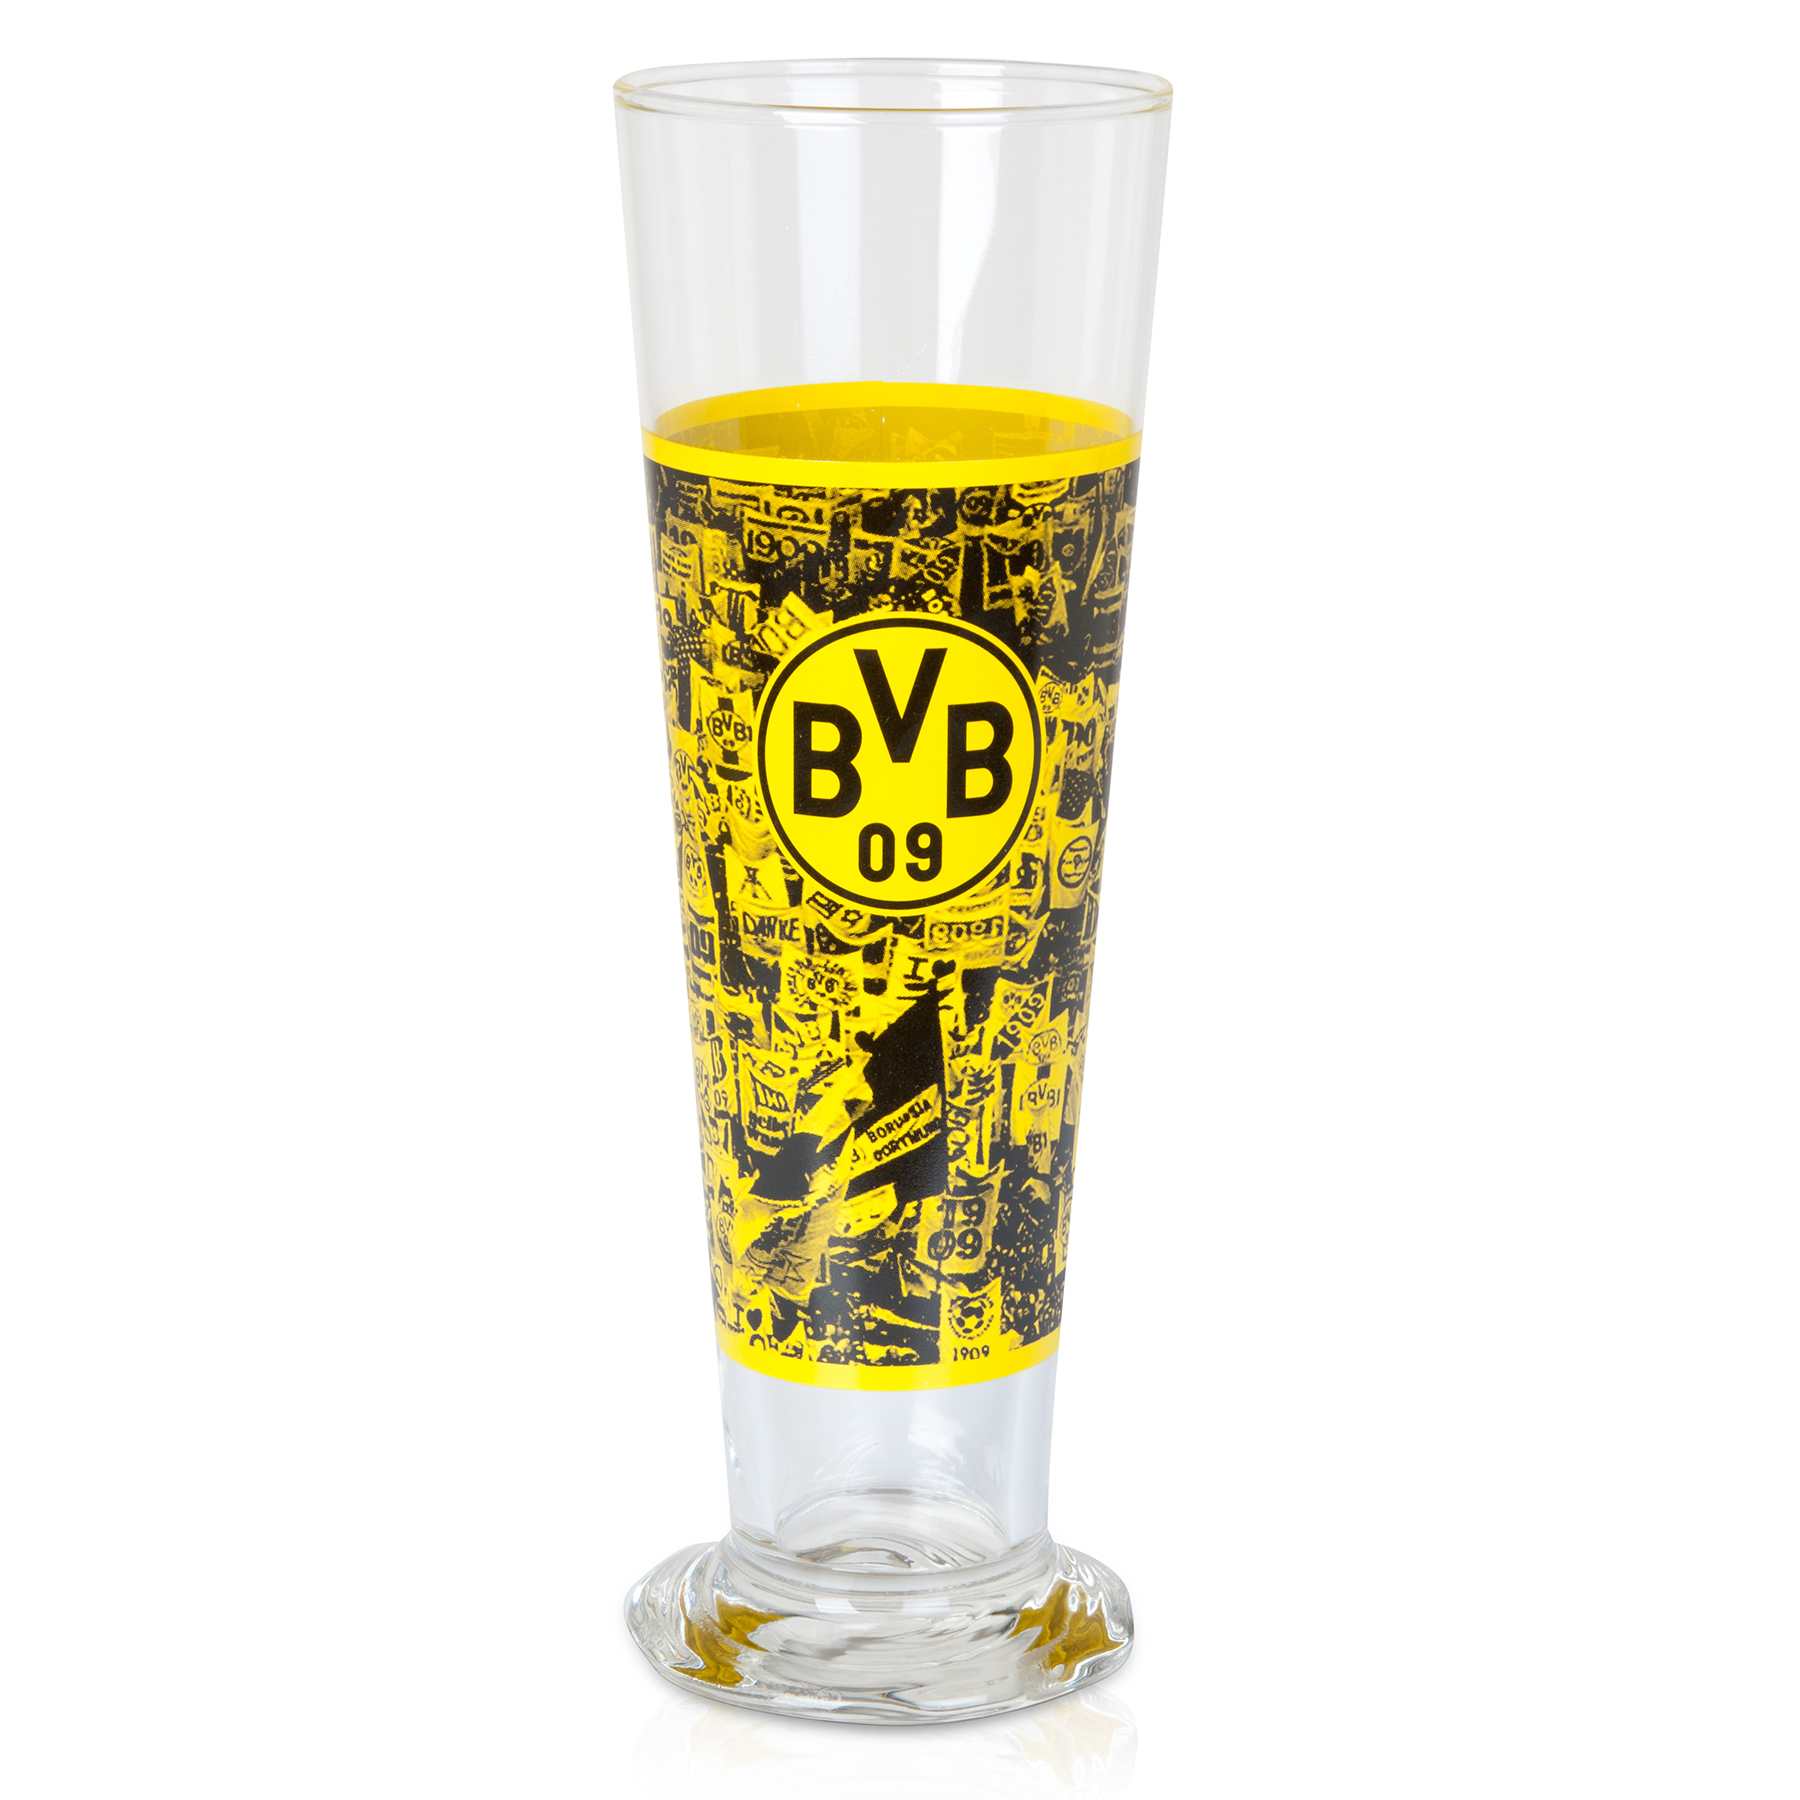 Image of BVB Beer Glass 0.3 L